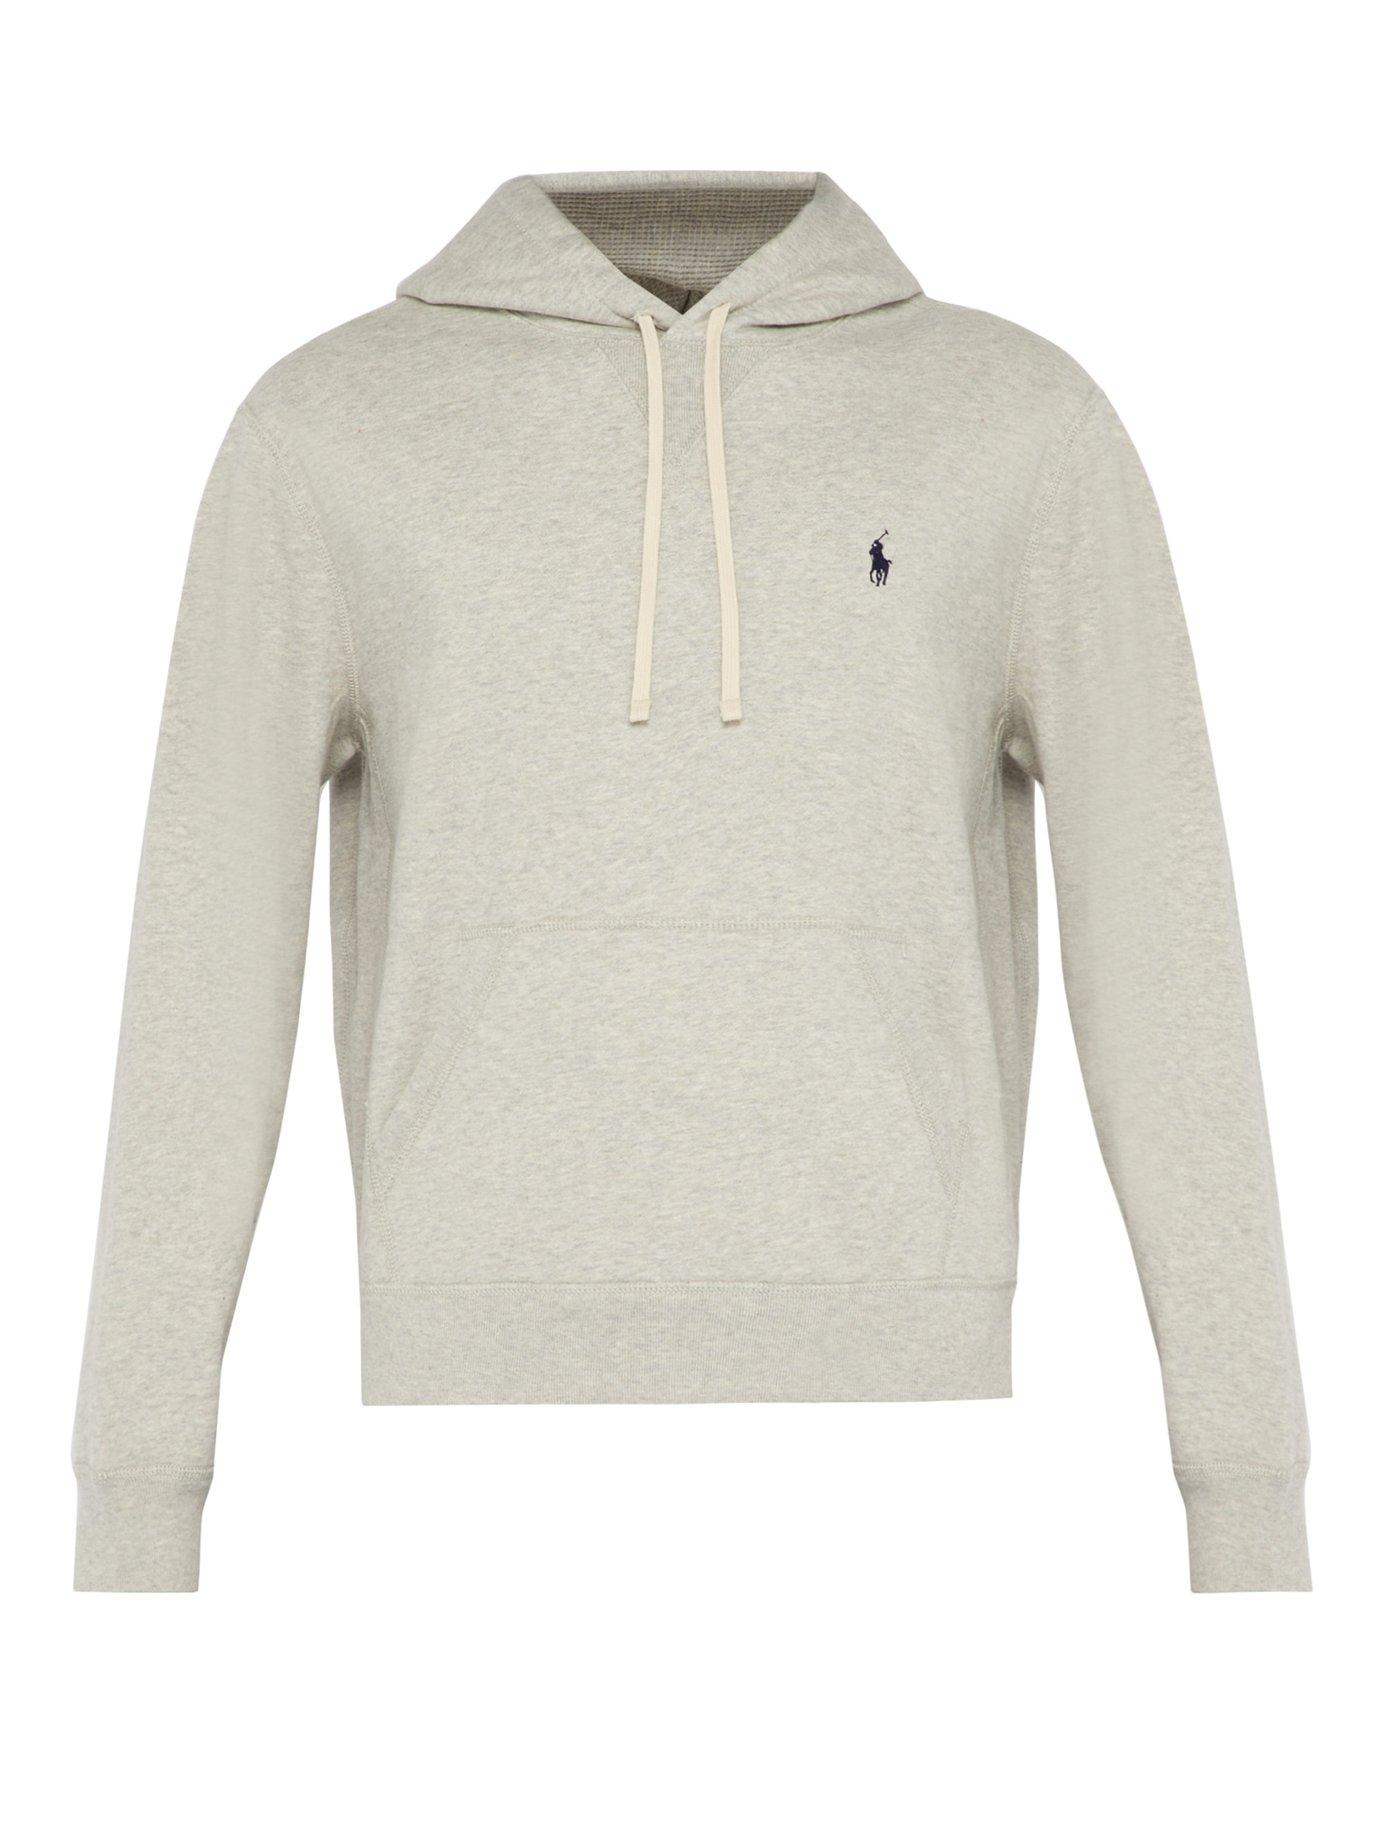 56cbbf50b Polo Ralph Lauren. Men's Gray Hooded Logo Embroidered Cotton Sweatshirt